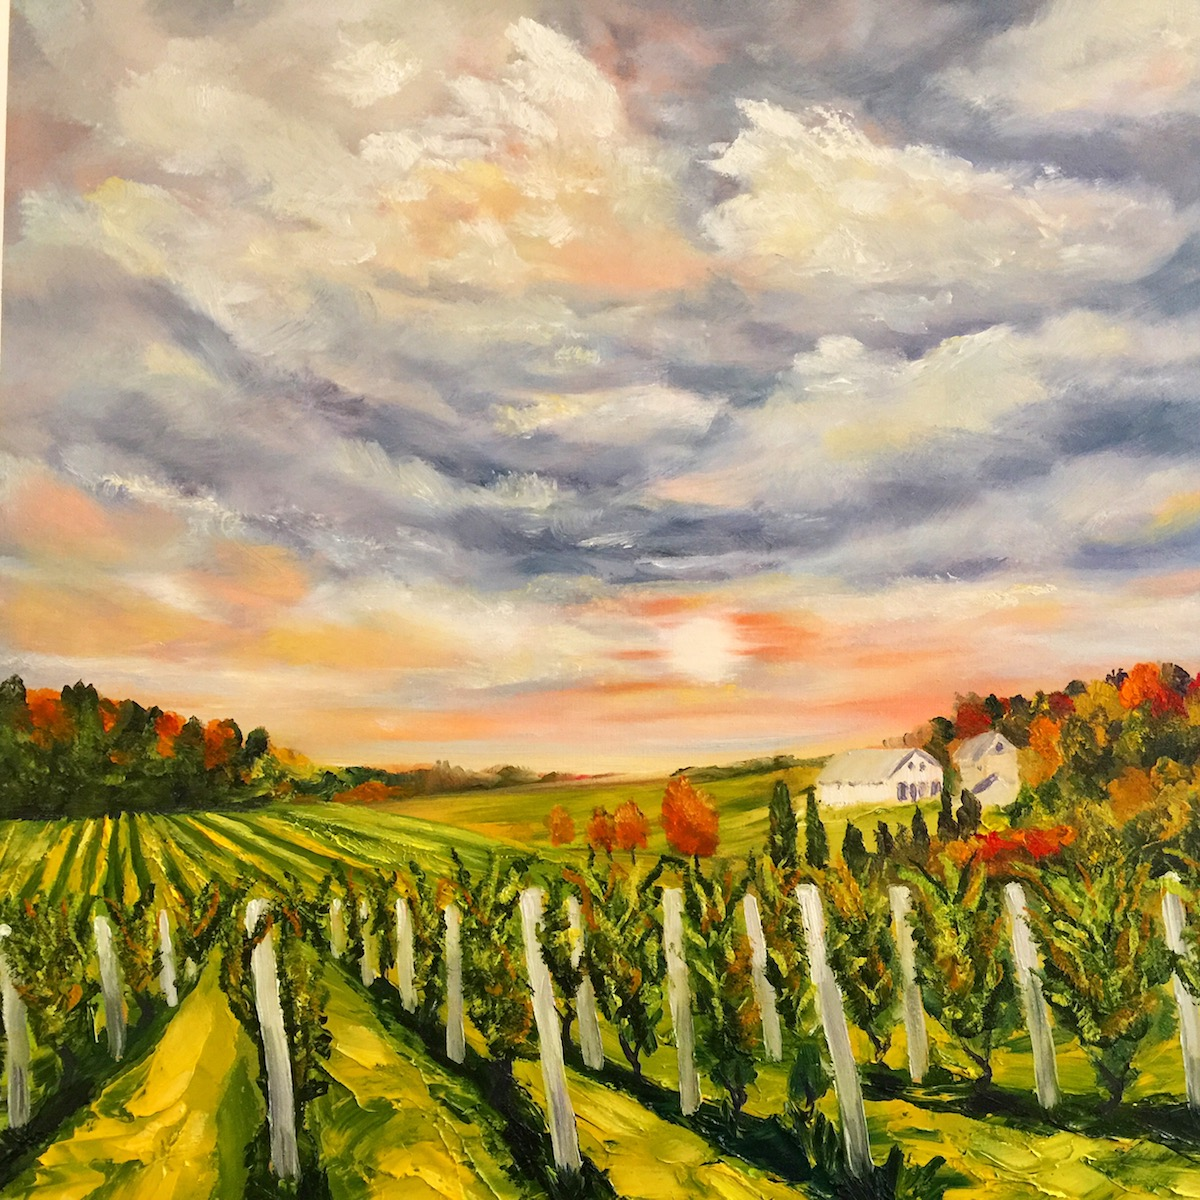 Brengman Brothers - Painting by Stephanie Schlatter